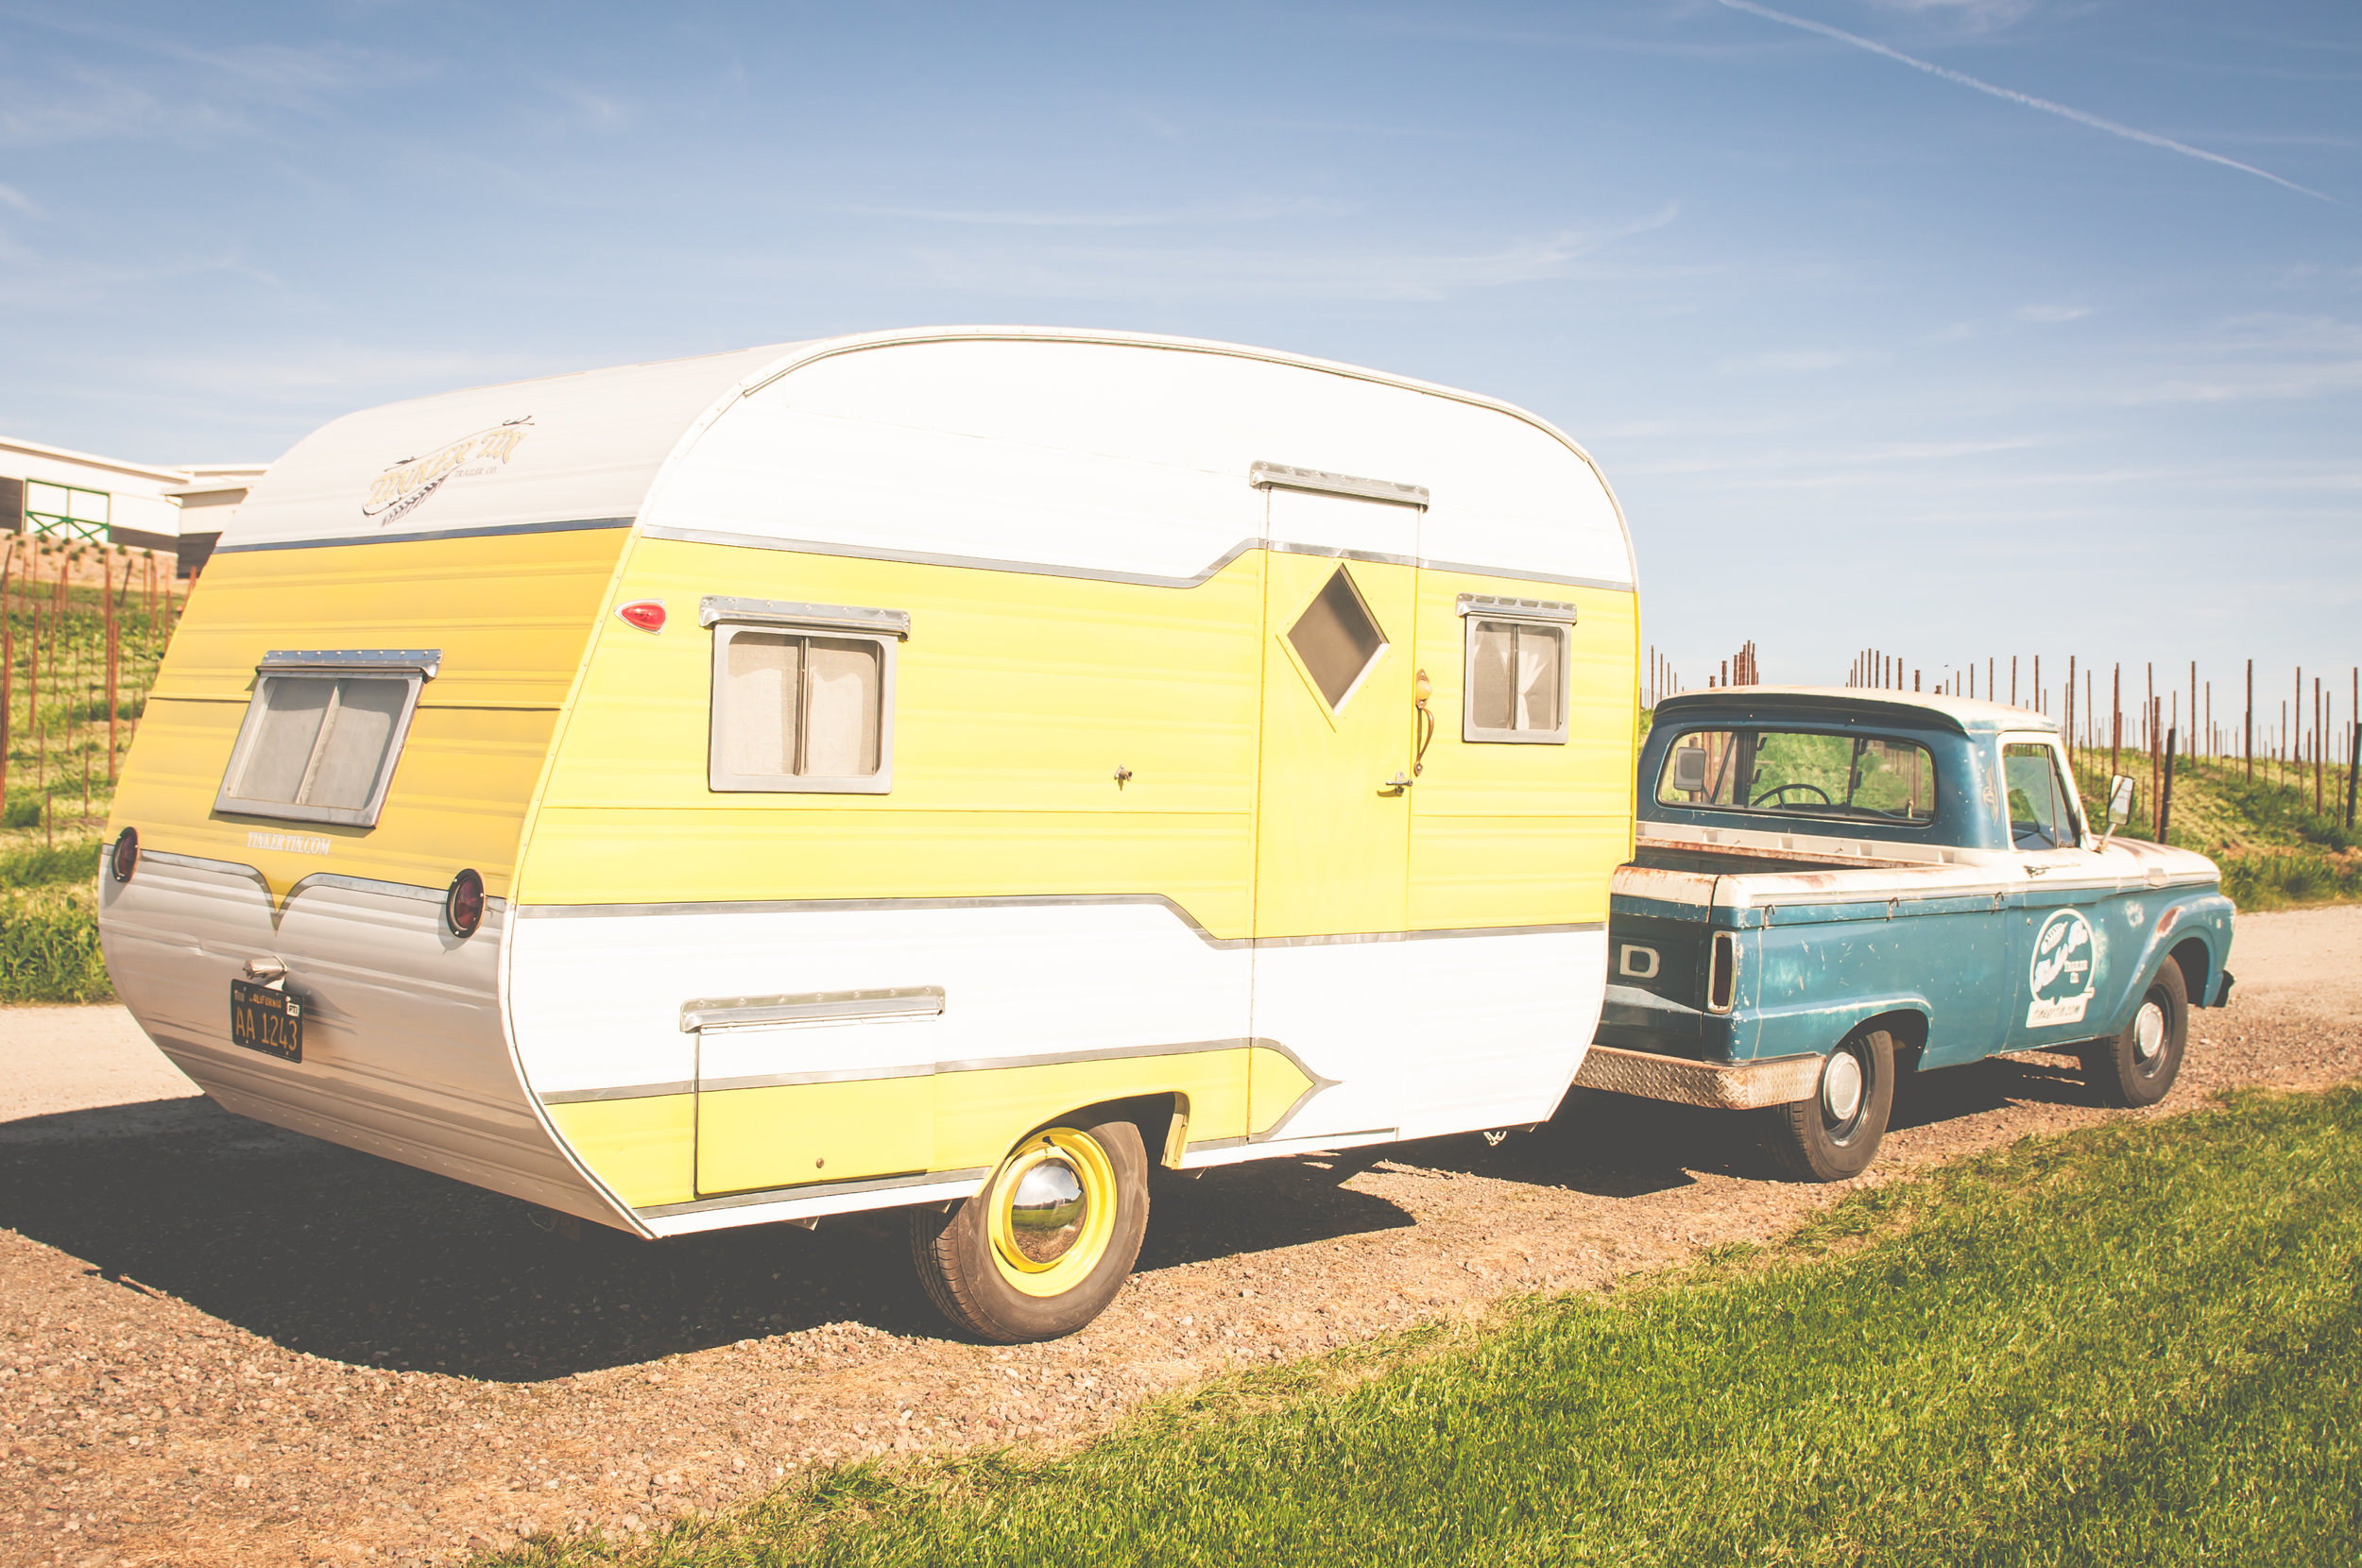 1950s VINTAGE yellow camper TRAILER, canned ham, AVAILABLE FOR MOVIE AND PRODUCTION RENTALS, FOR BACKSTAGE LOUNGES, FILMING, TV & MOVIES, FOR HAIR AND MAKEUP, COMMERCIAL AND CATALOGUE PHOTO SHOOTS & MORE